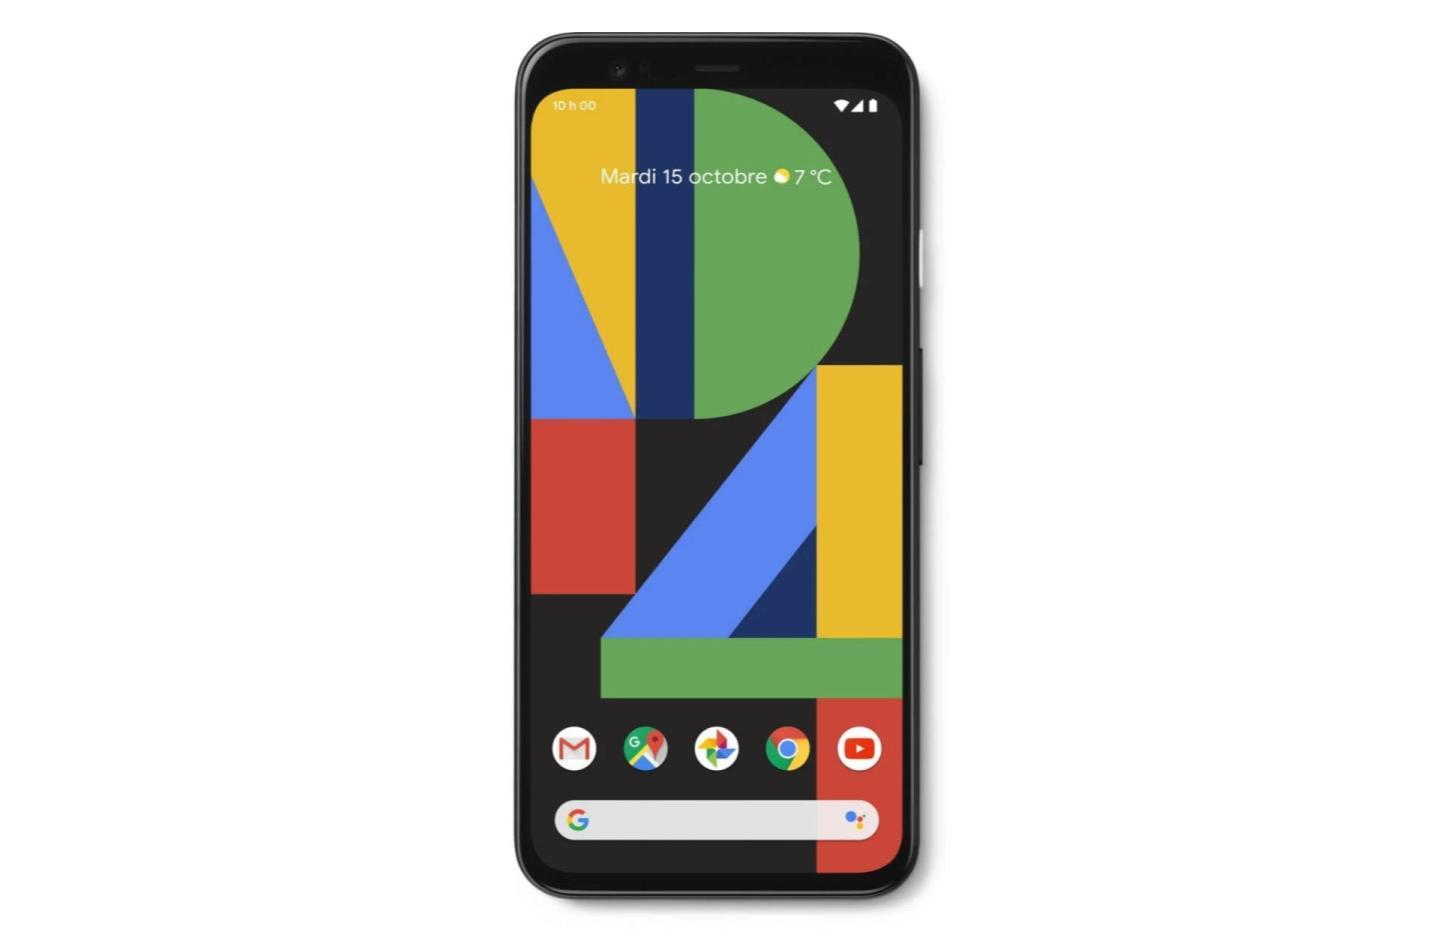 Pixel 4 : l'excellent photophone de Google descend enfin à un prix acceptable